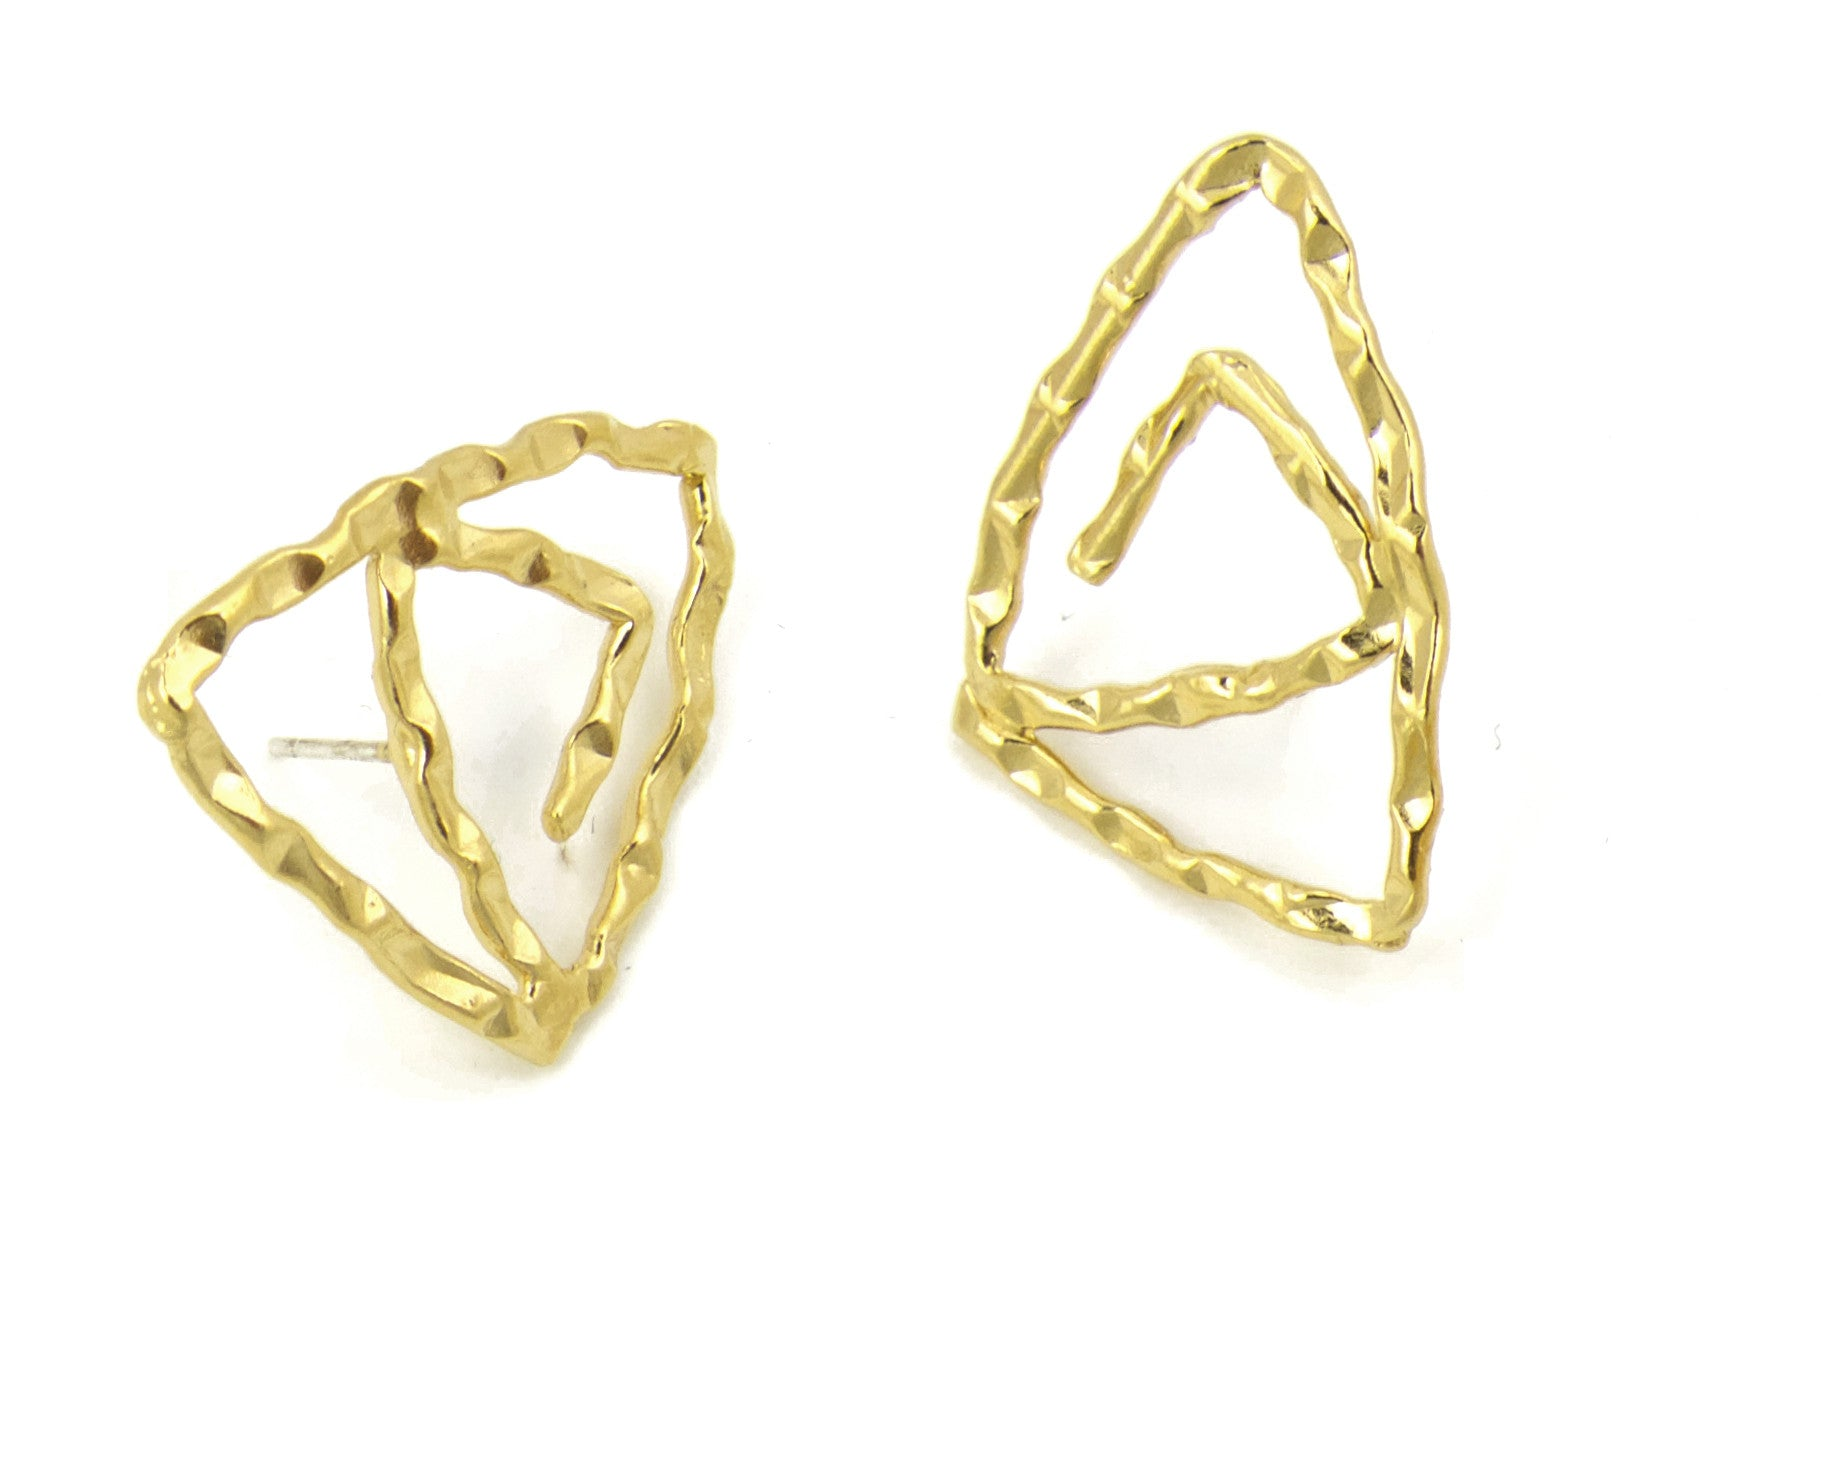 Patera B Earrings